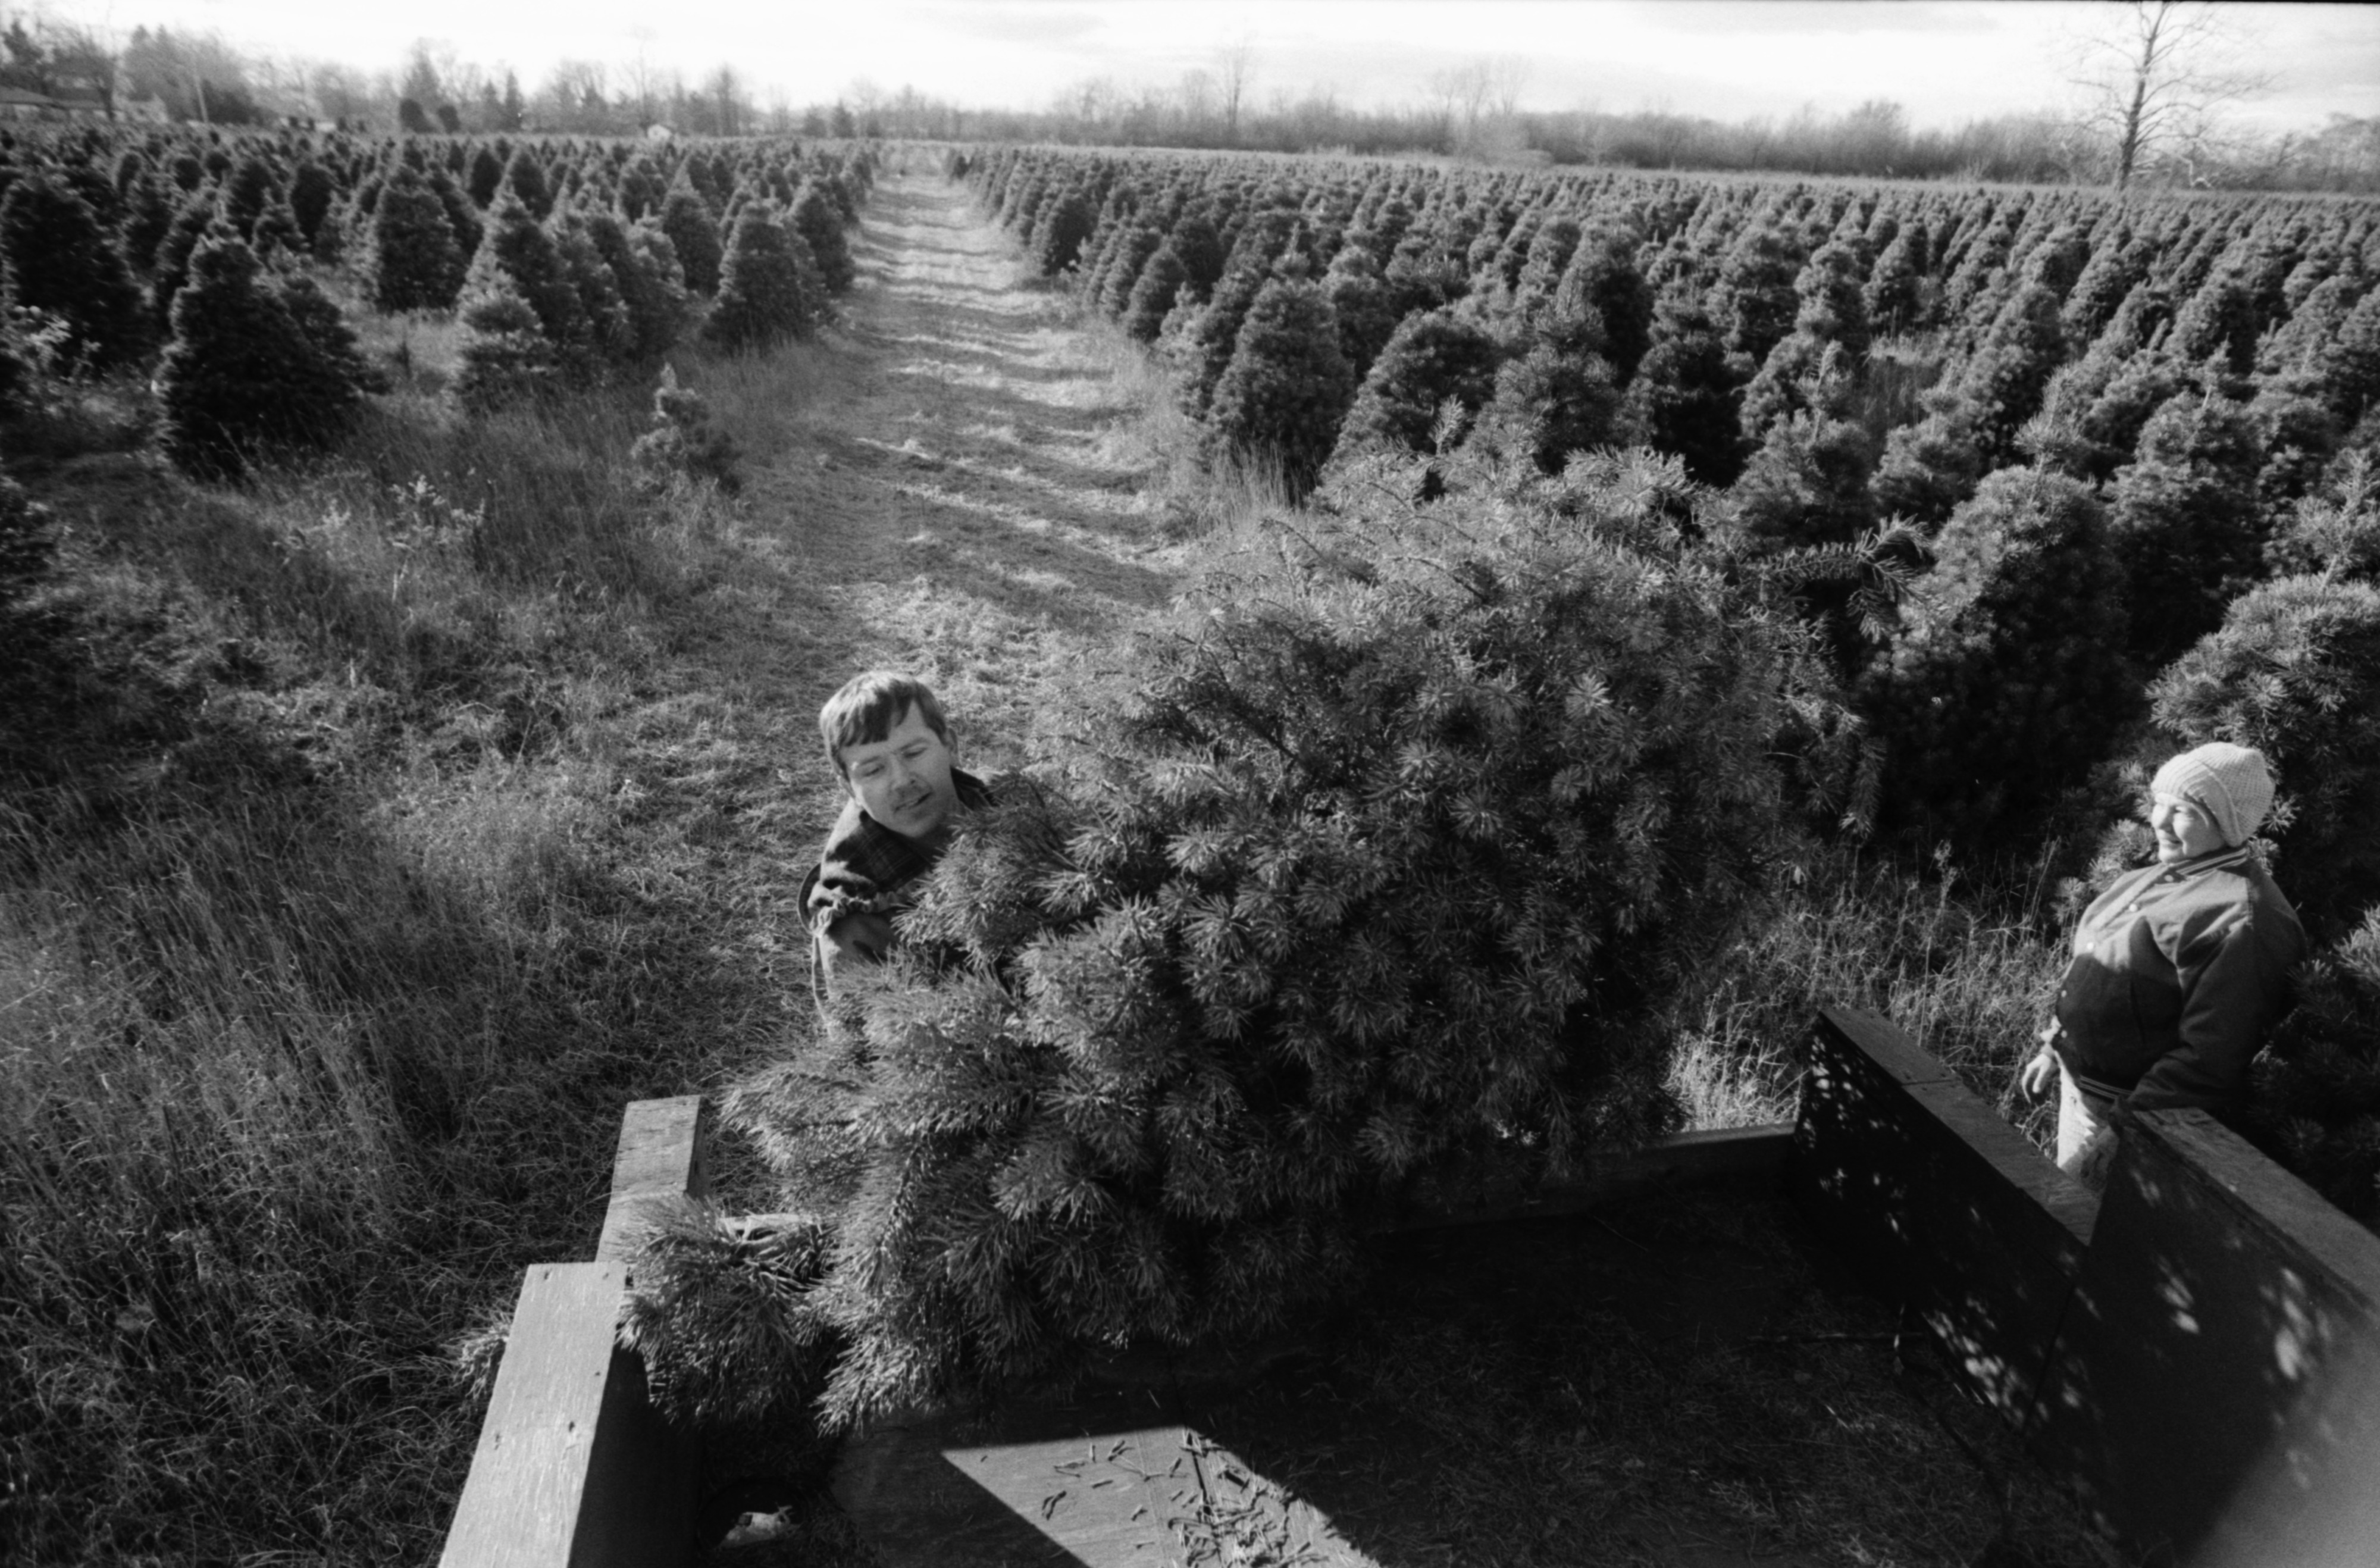 Self-Cut Christmas Trees at Boughans Tree Farm, November 1989 image